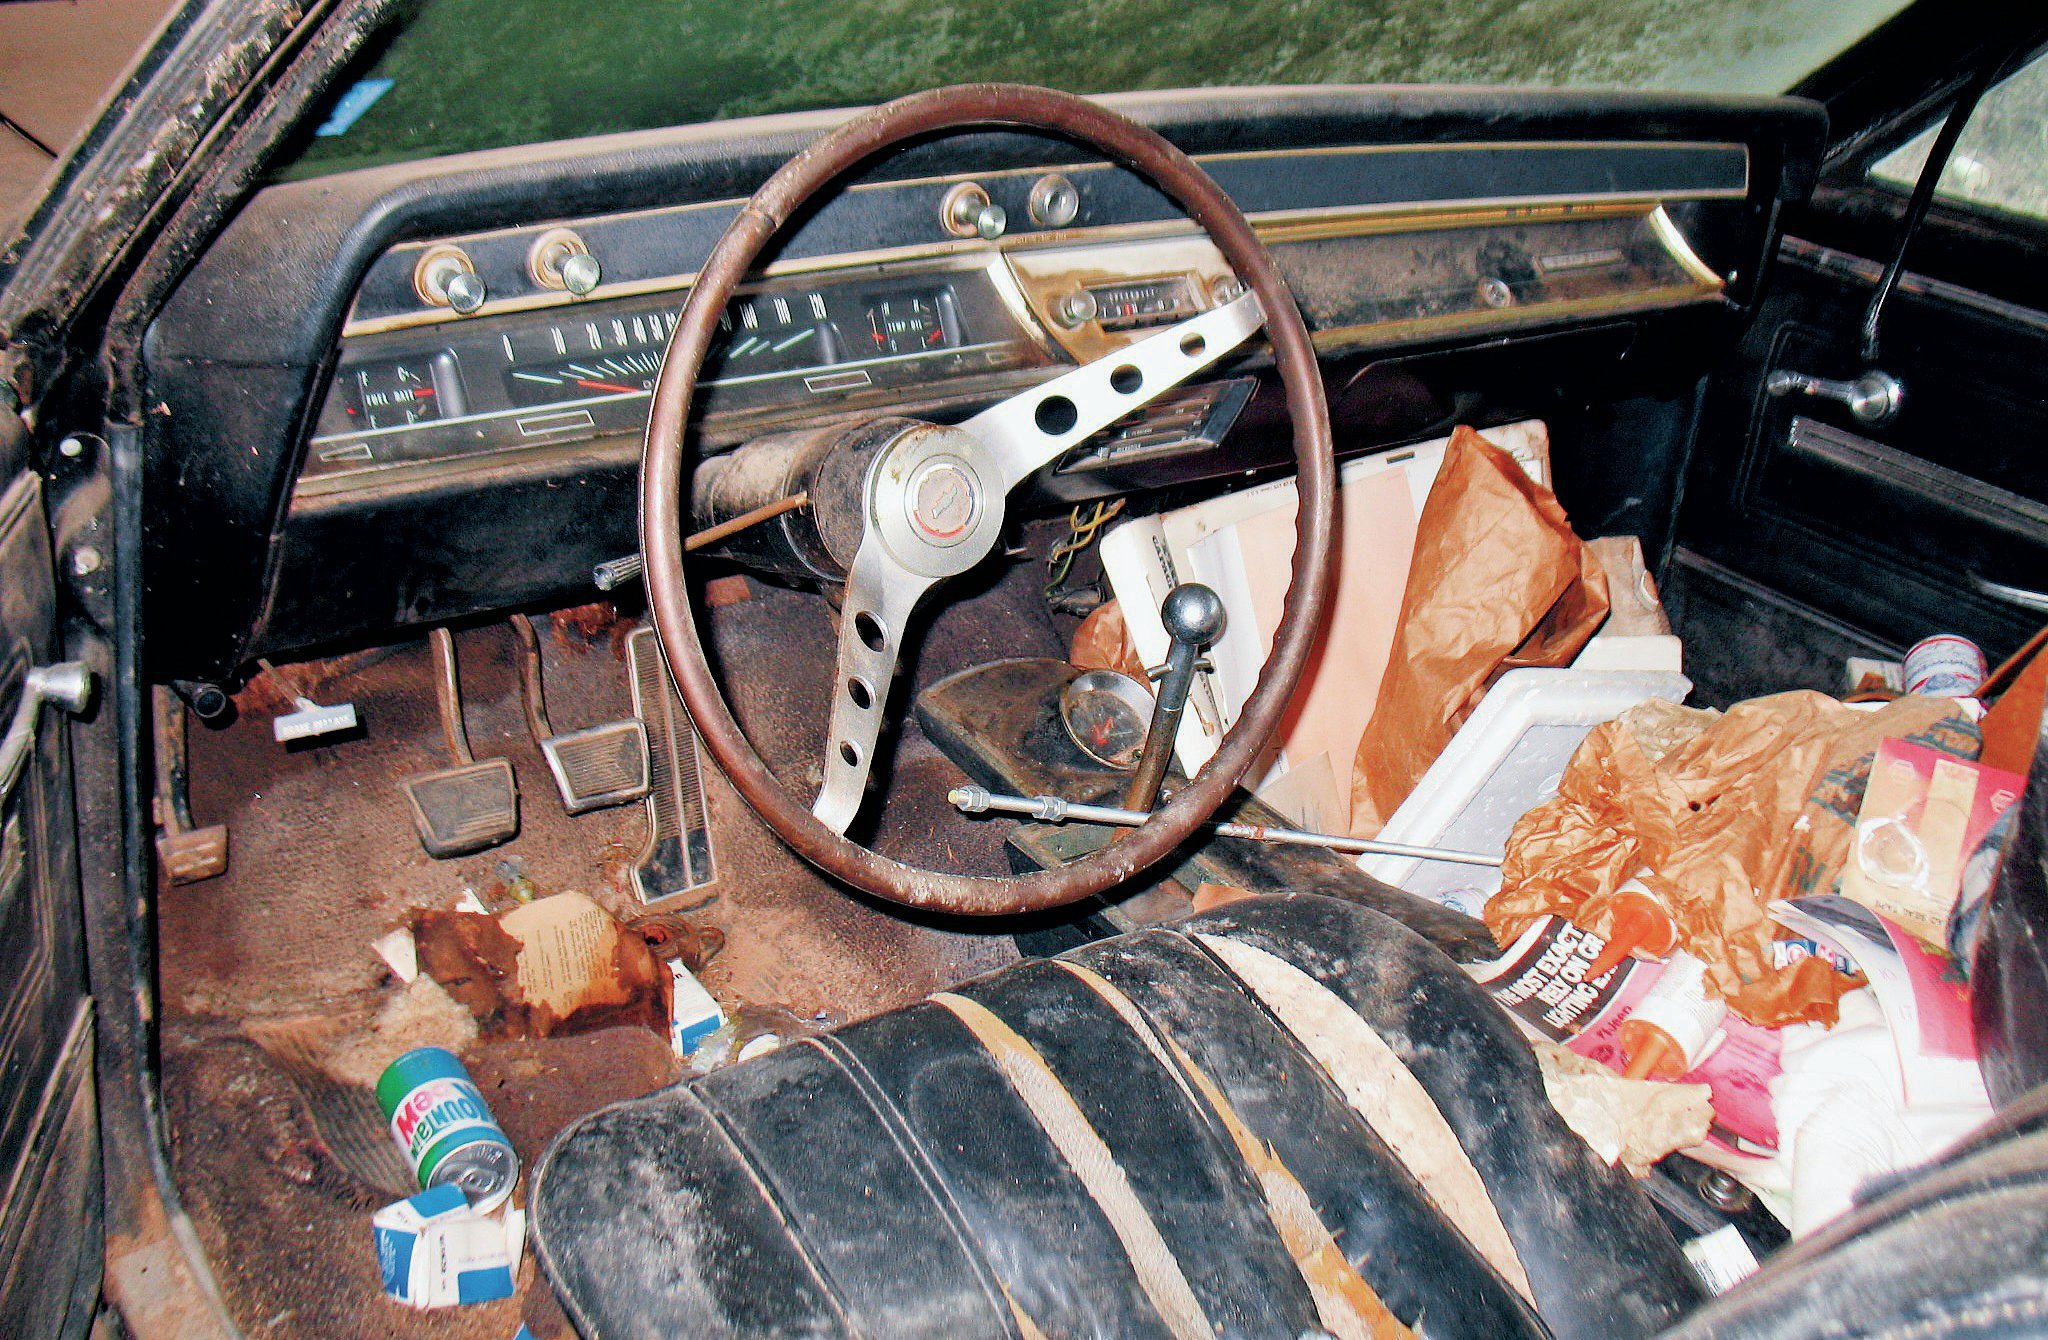 The interior was full of beer cans, spare parts, and odds and ends.